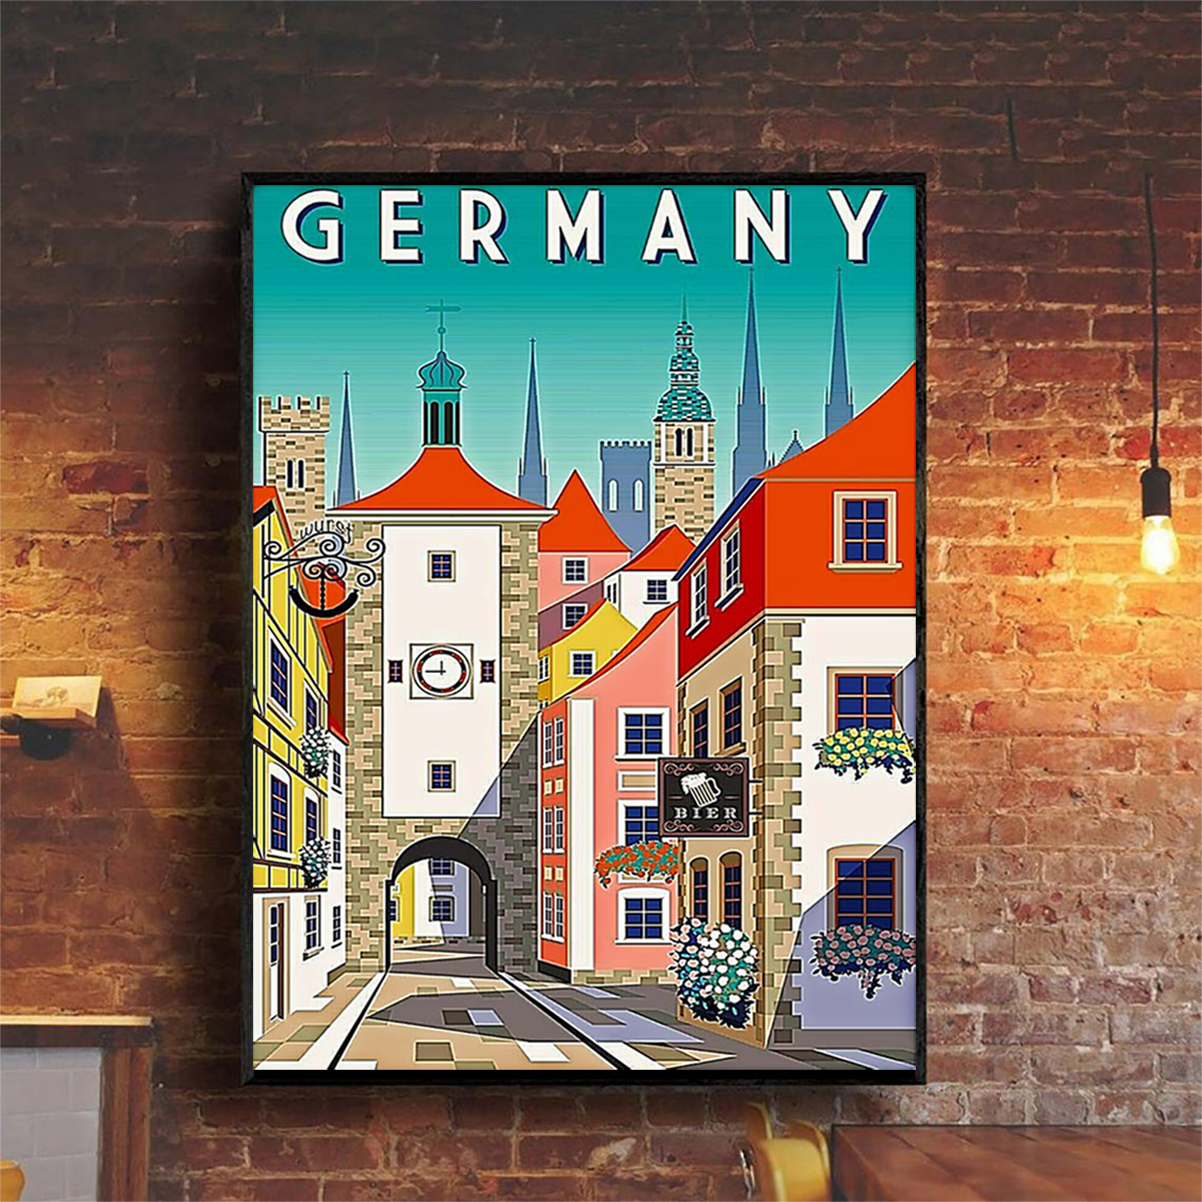 Germany poster A2